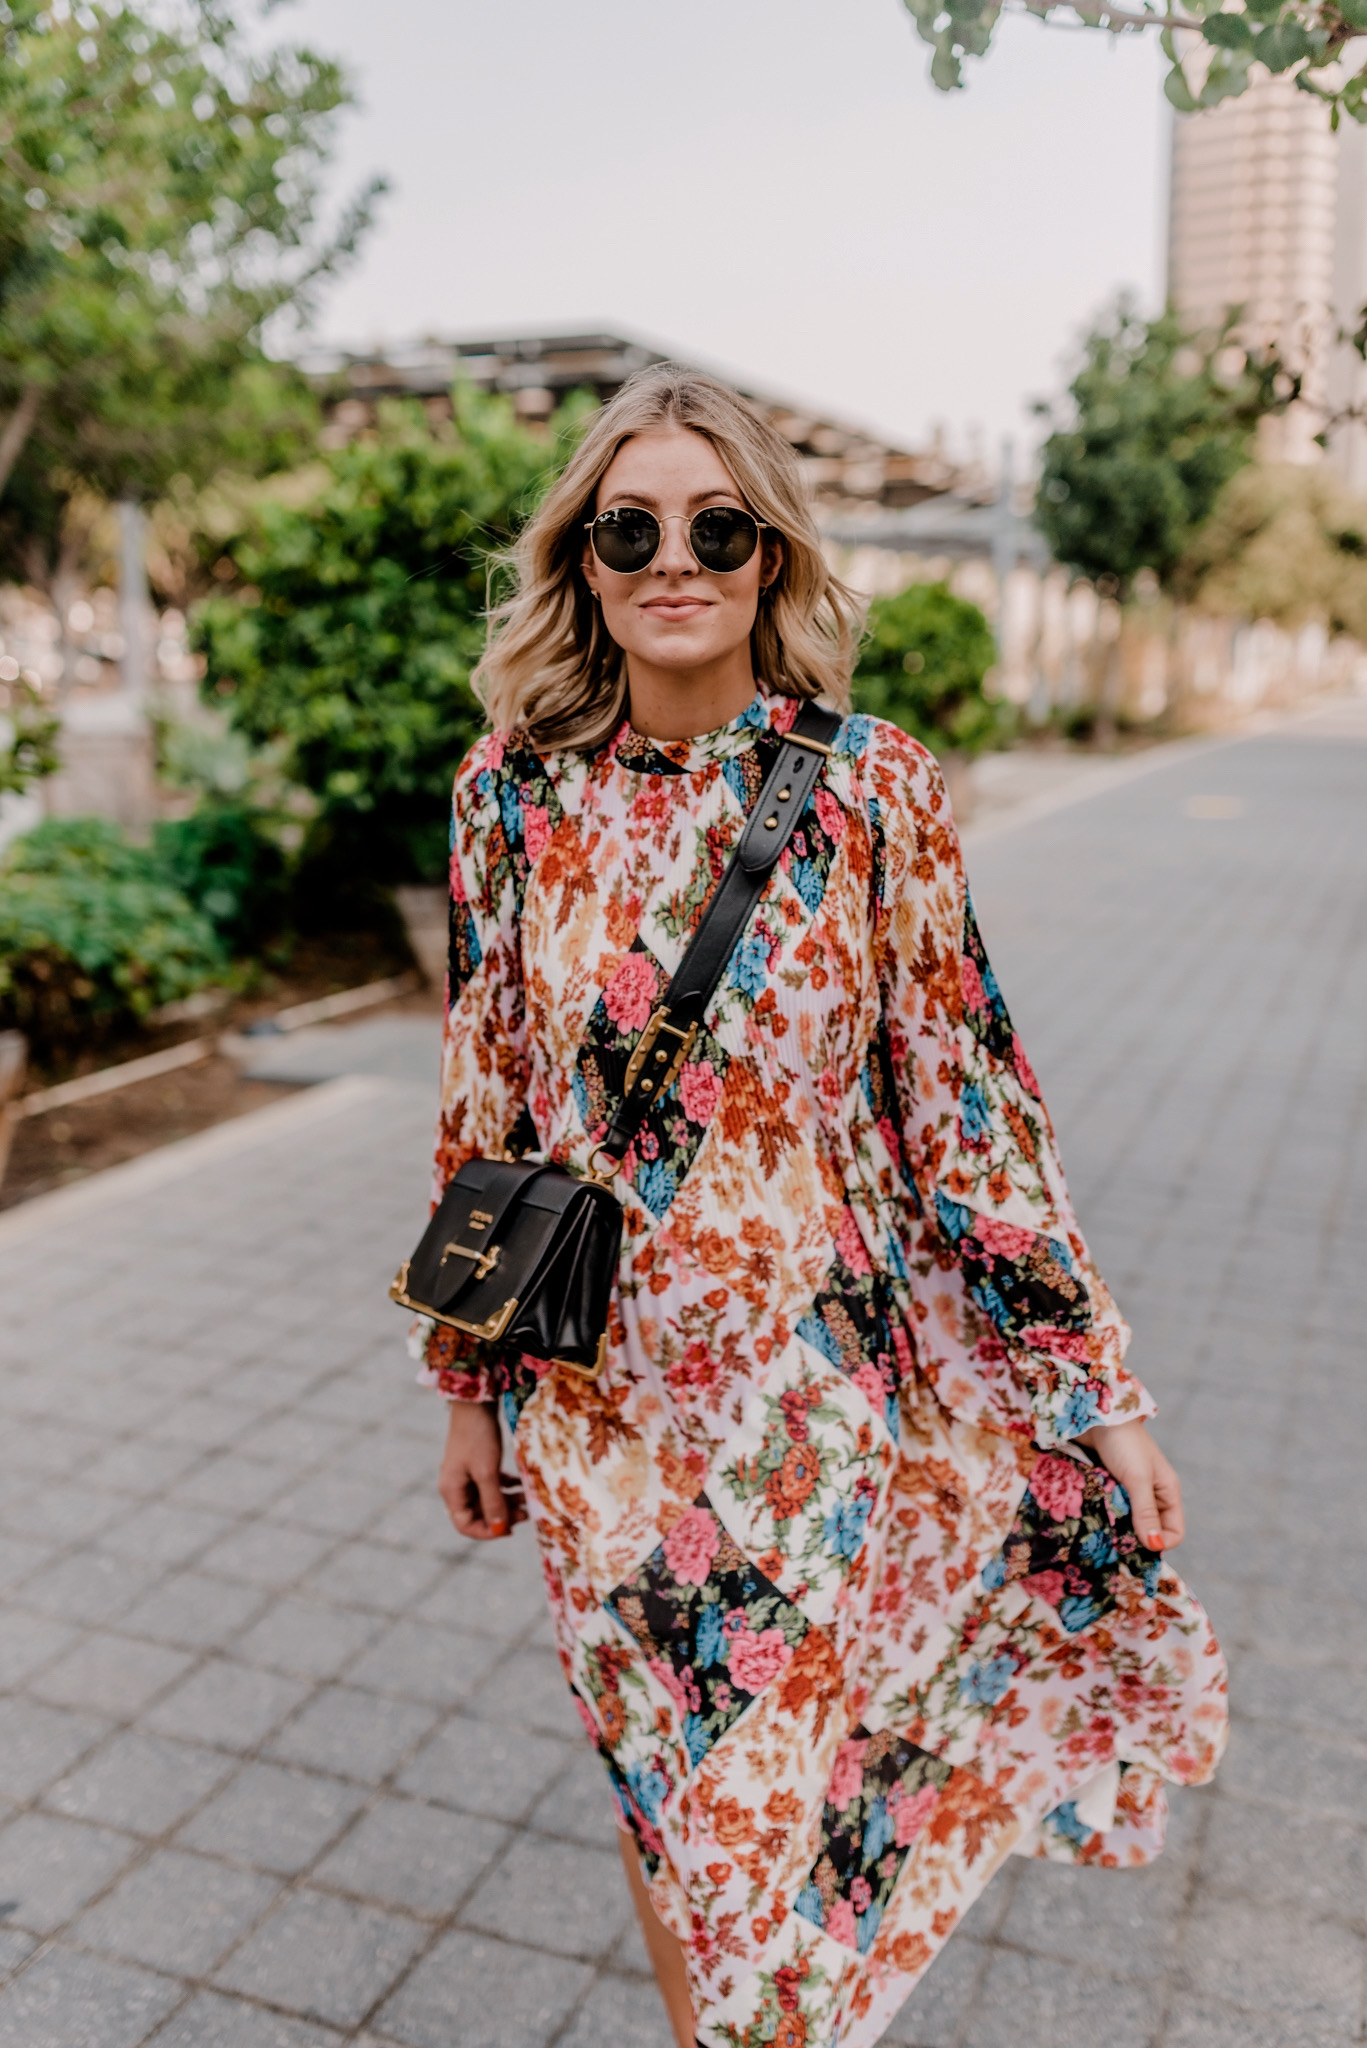 Fall Dresses by popular San Diego fashion blog, Nay Grace: image of a woman walking outside and wearing a Anthropologie Shara Pleated Midi Dress, Nordstrom Icons 50mm Round Metal Sunglasses RAY-BAN, and a Prada Cahier shoulder bag.